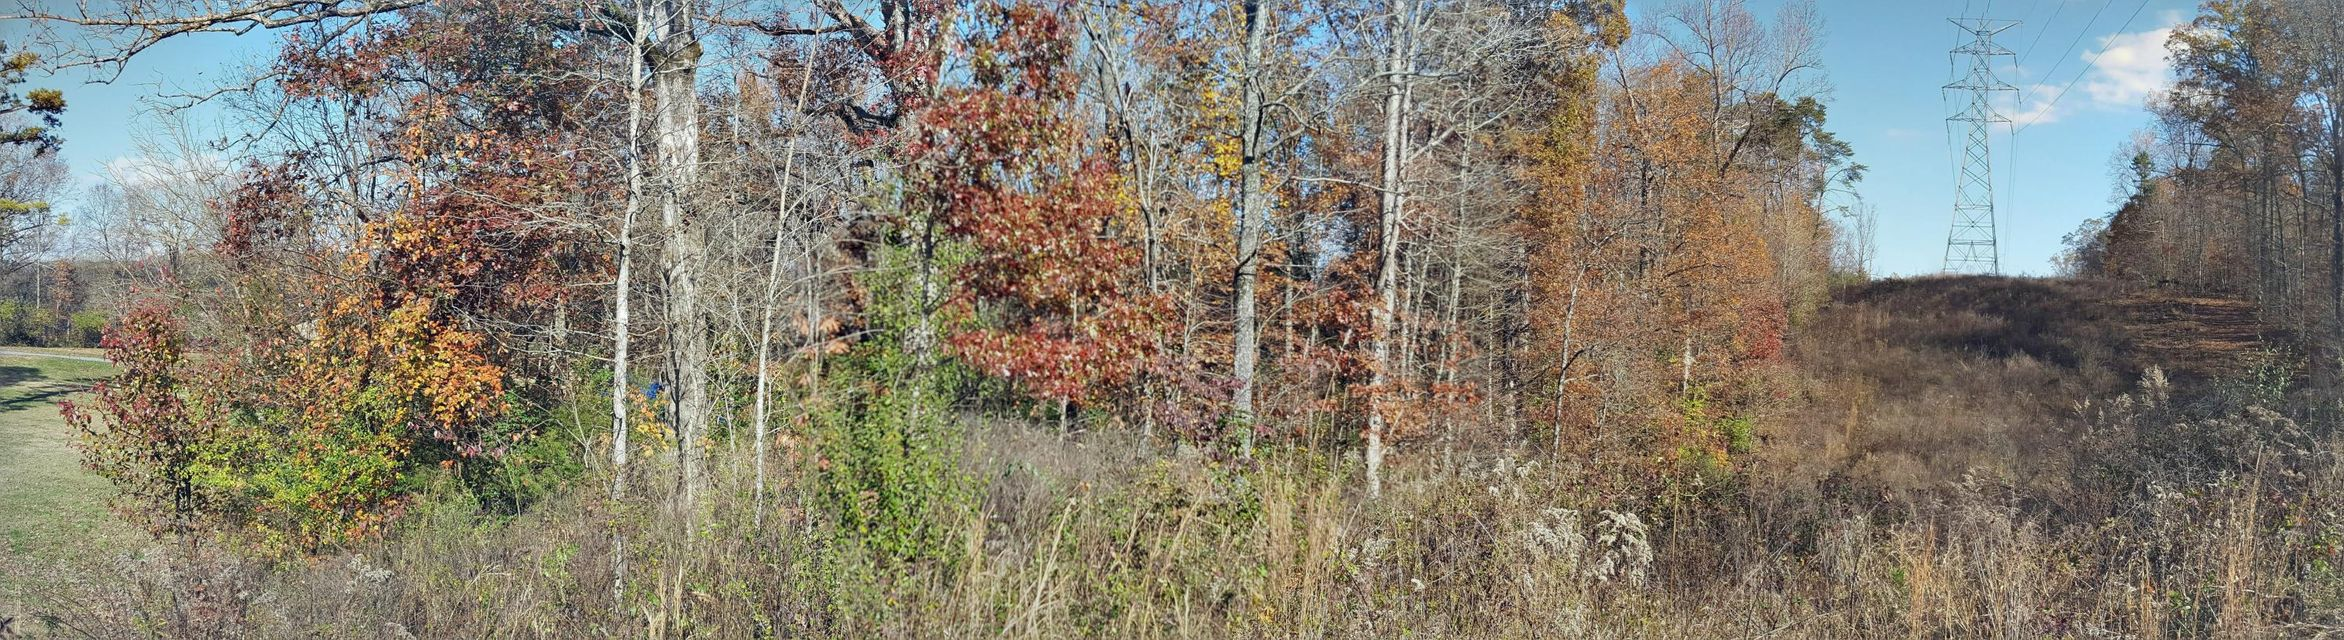 Land for Sale at 3550 Wrights Ferry Road 3550 Wrights Ferry Road Louisville, Tennessee 37777 United States